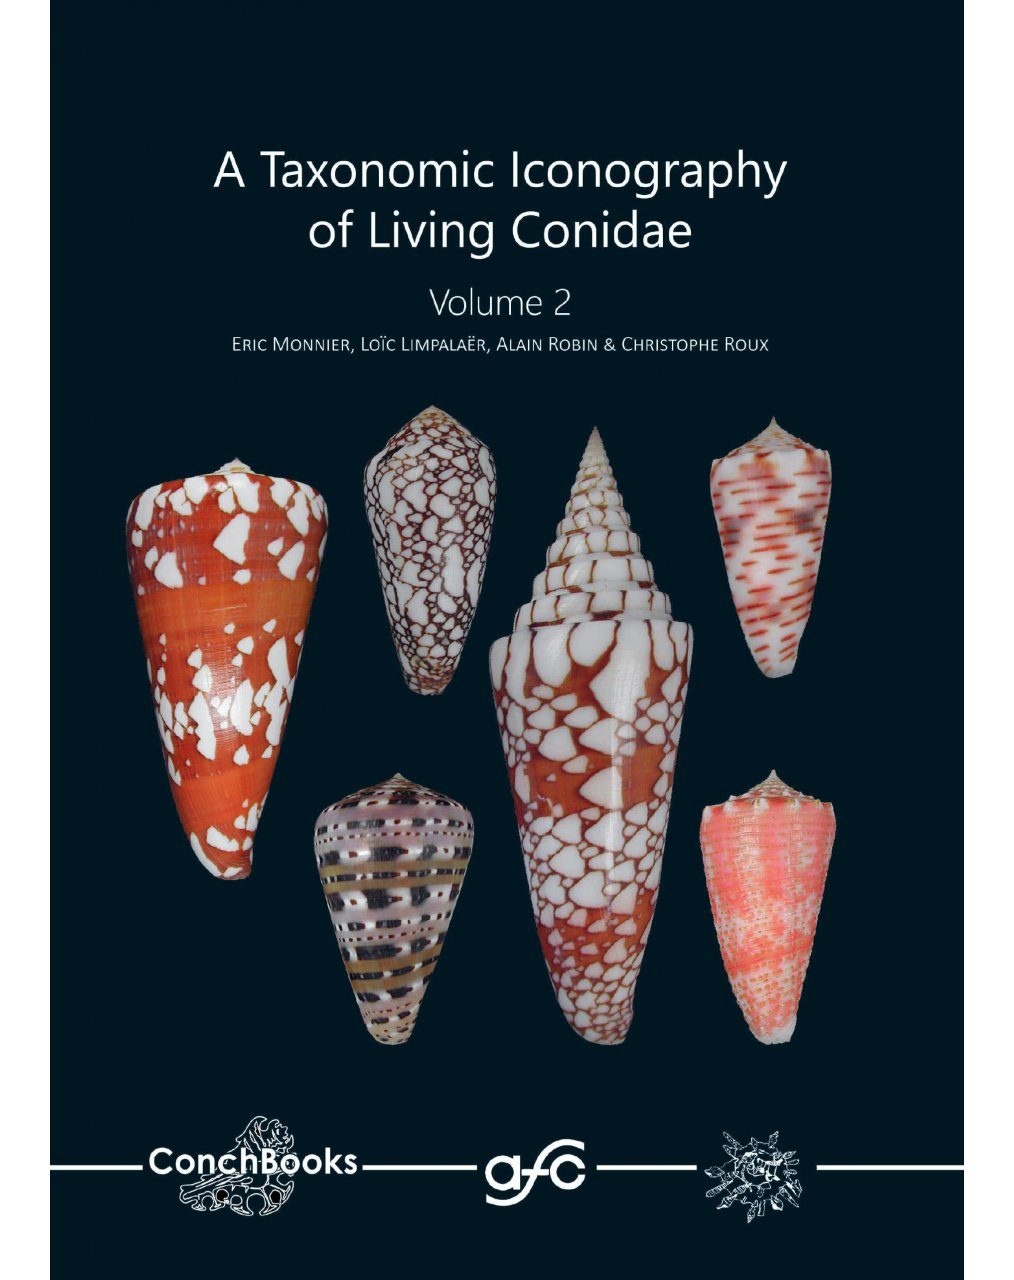 A Taxonomic Iconography of Living Conidae, Volume 2